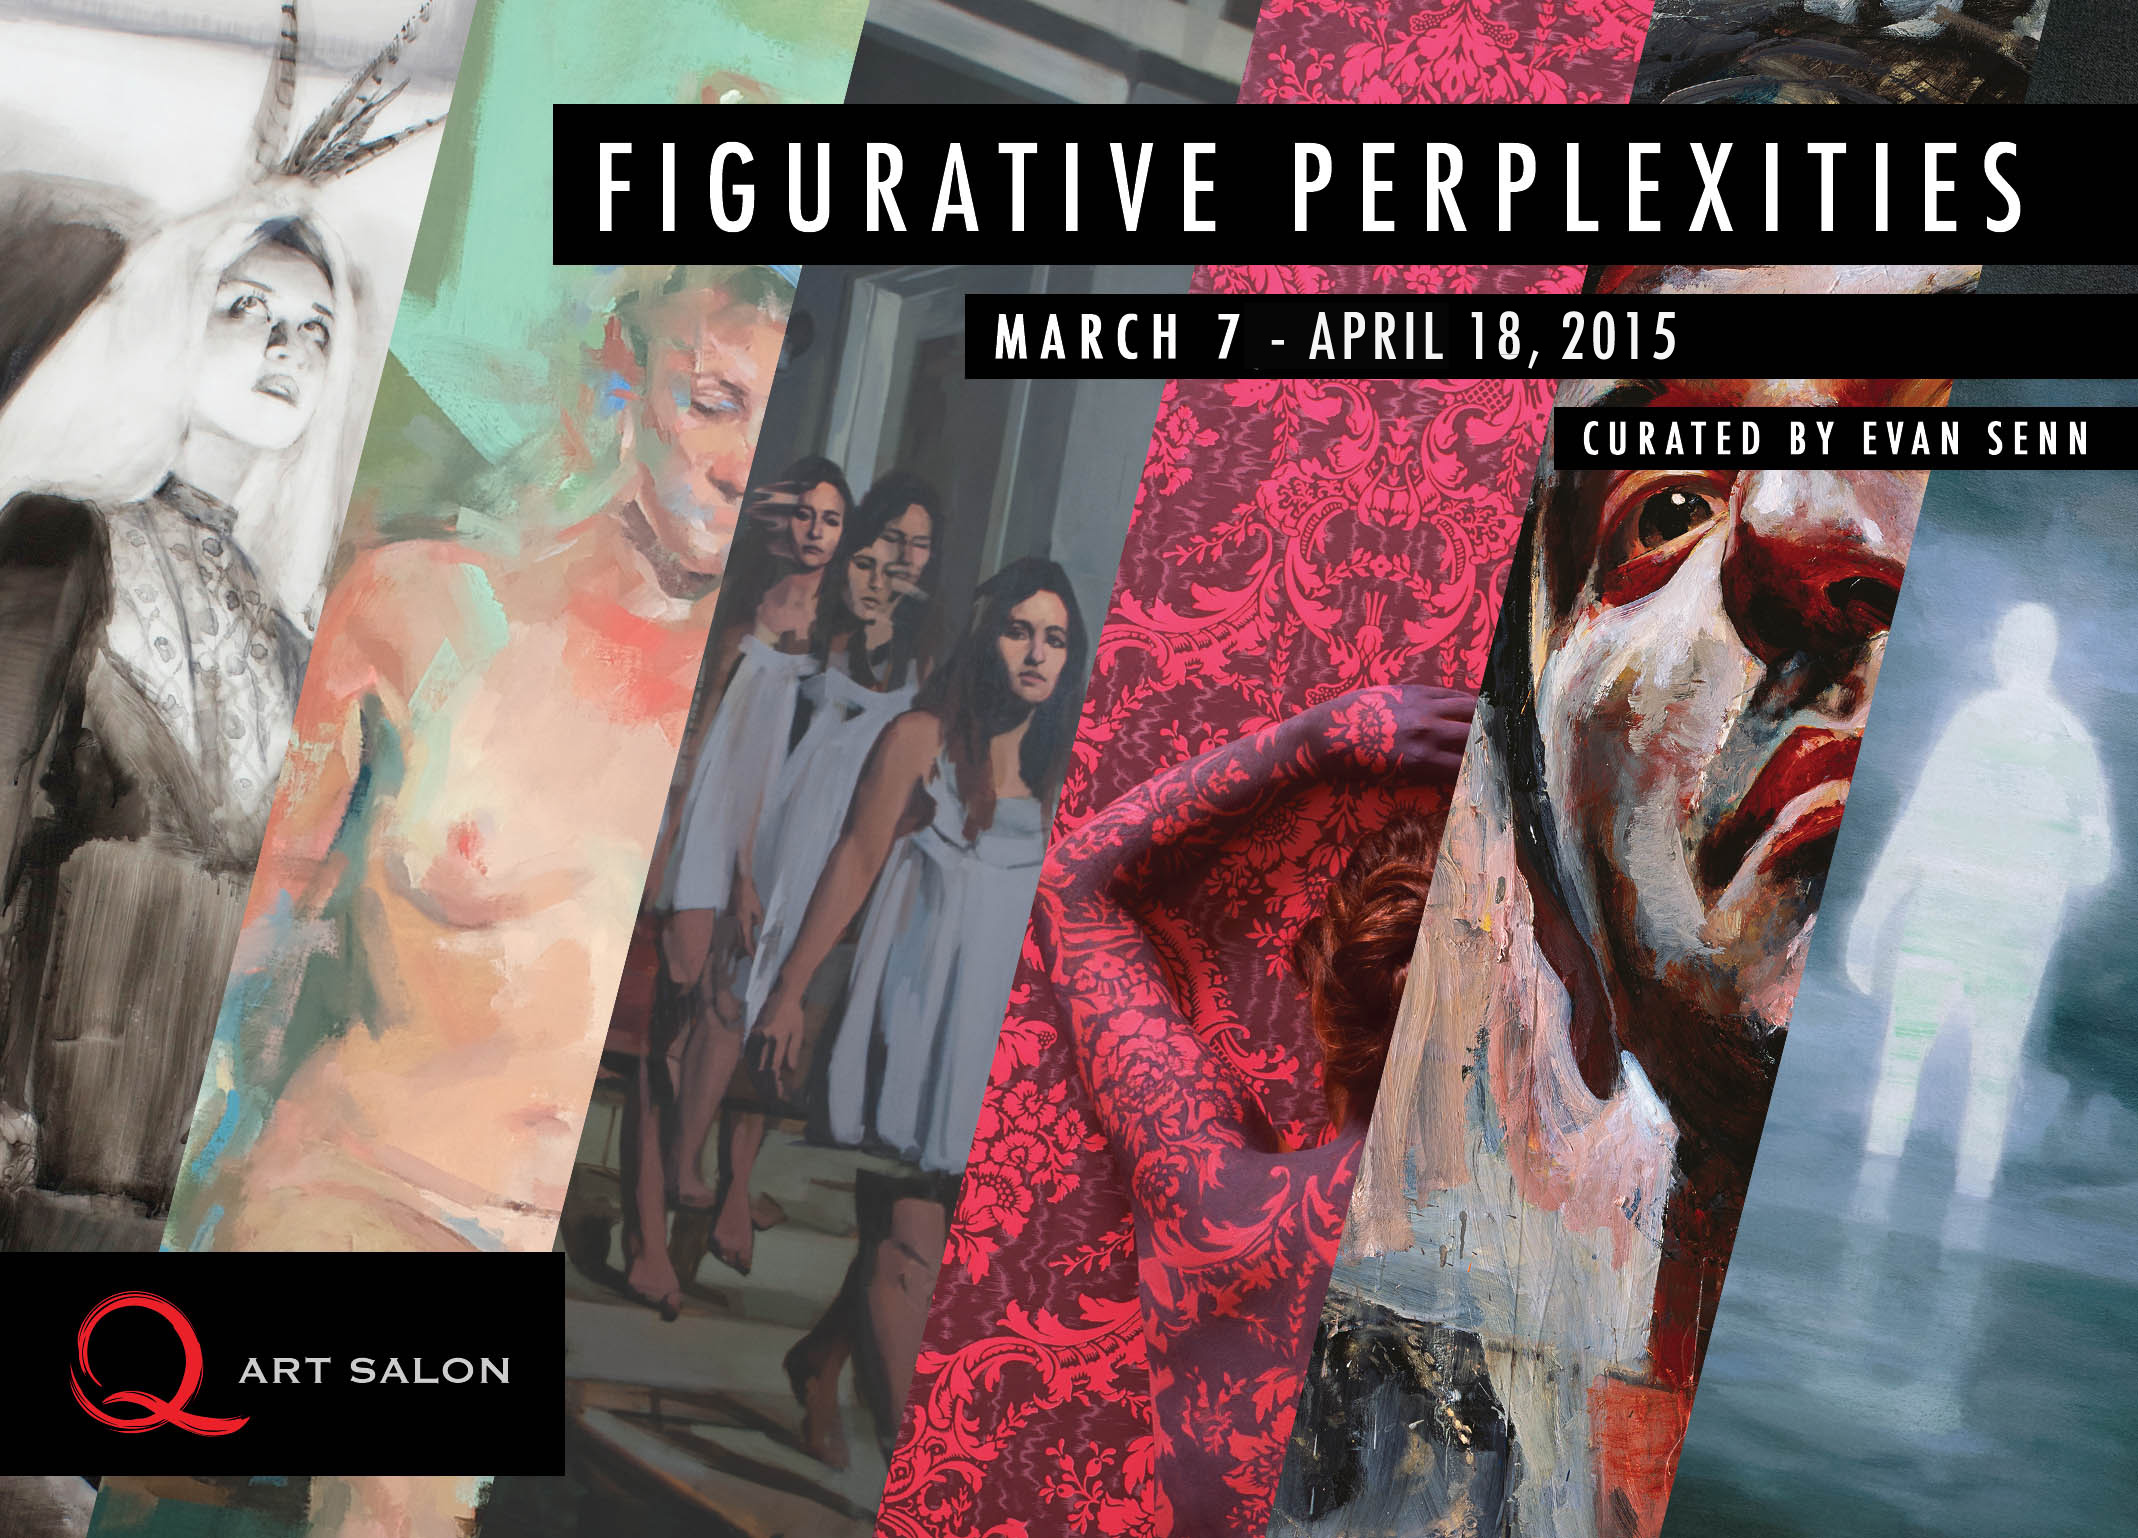 Figurative Perplexities